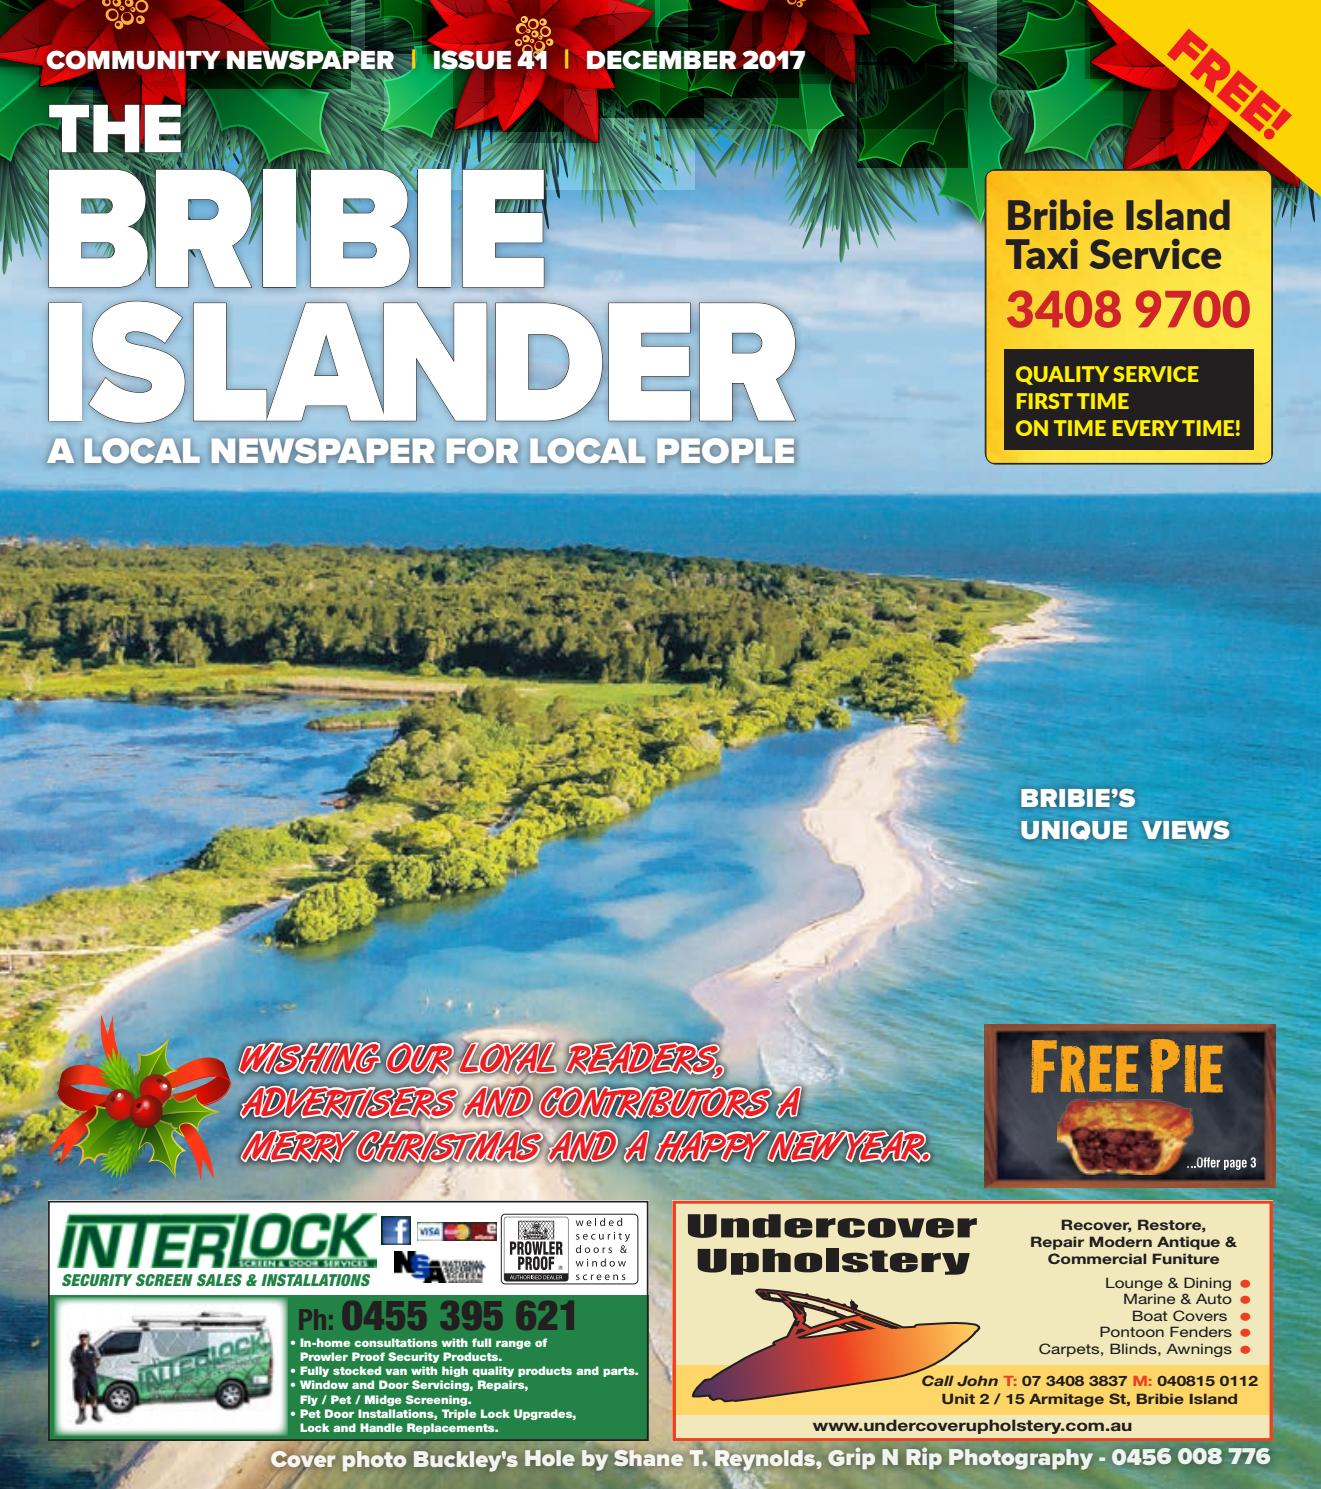 de5b0c17da413 The Bribie Islander December 2017 Issue 41 by The Bribie Islander ...